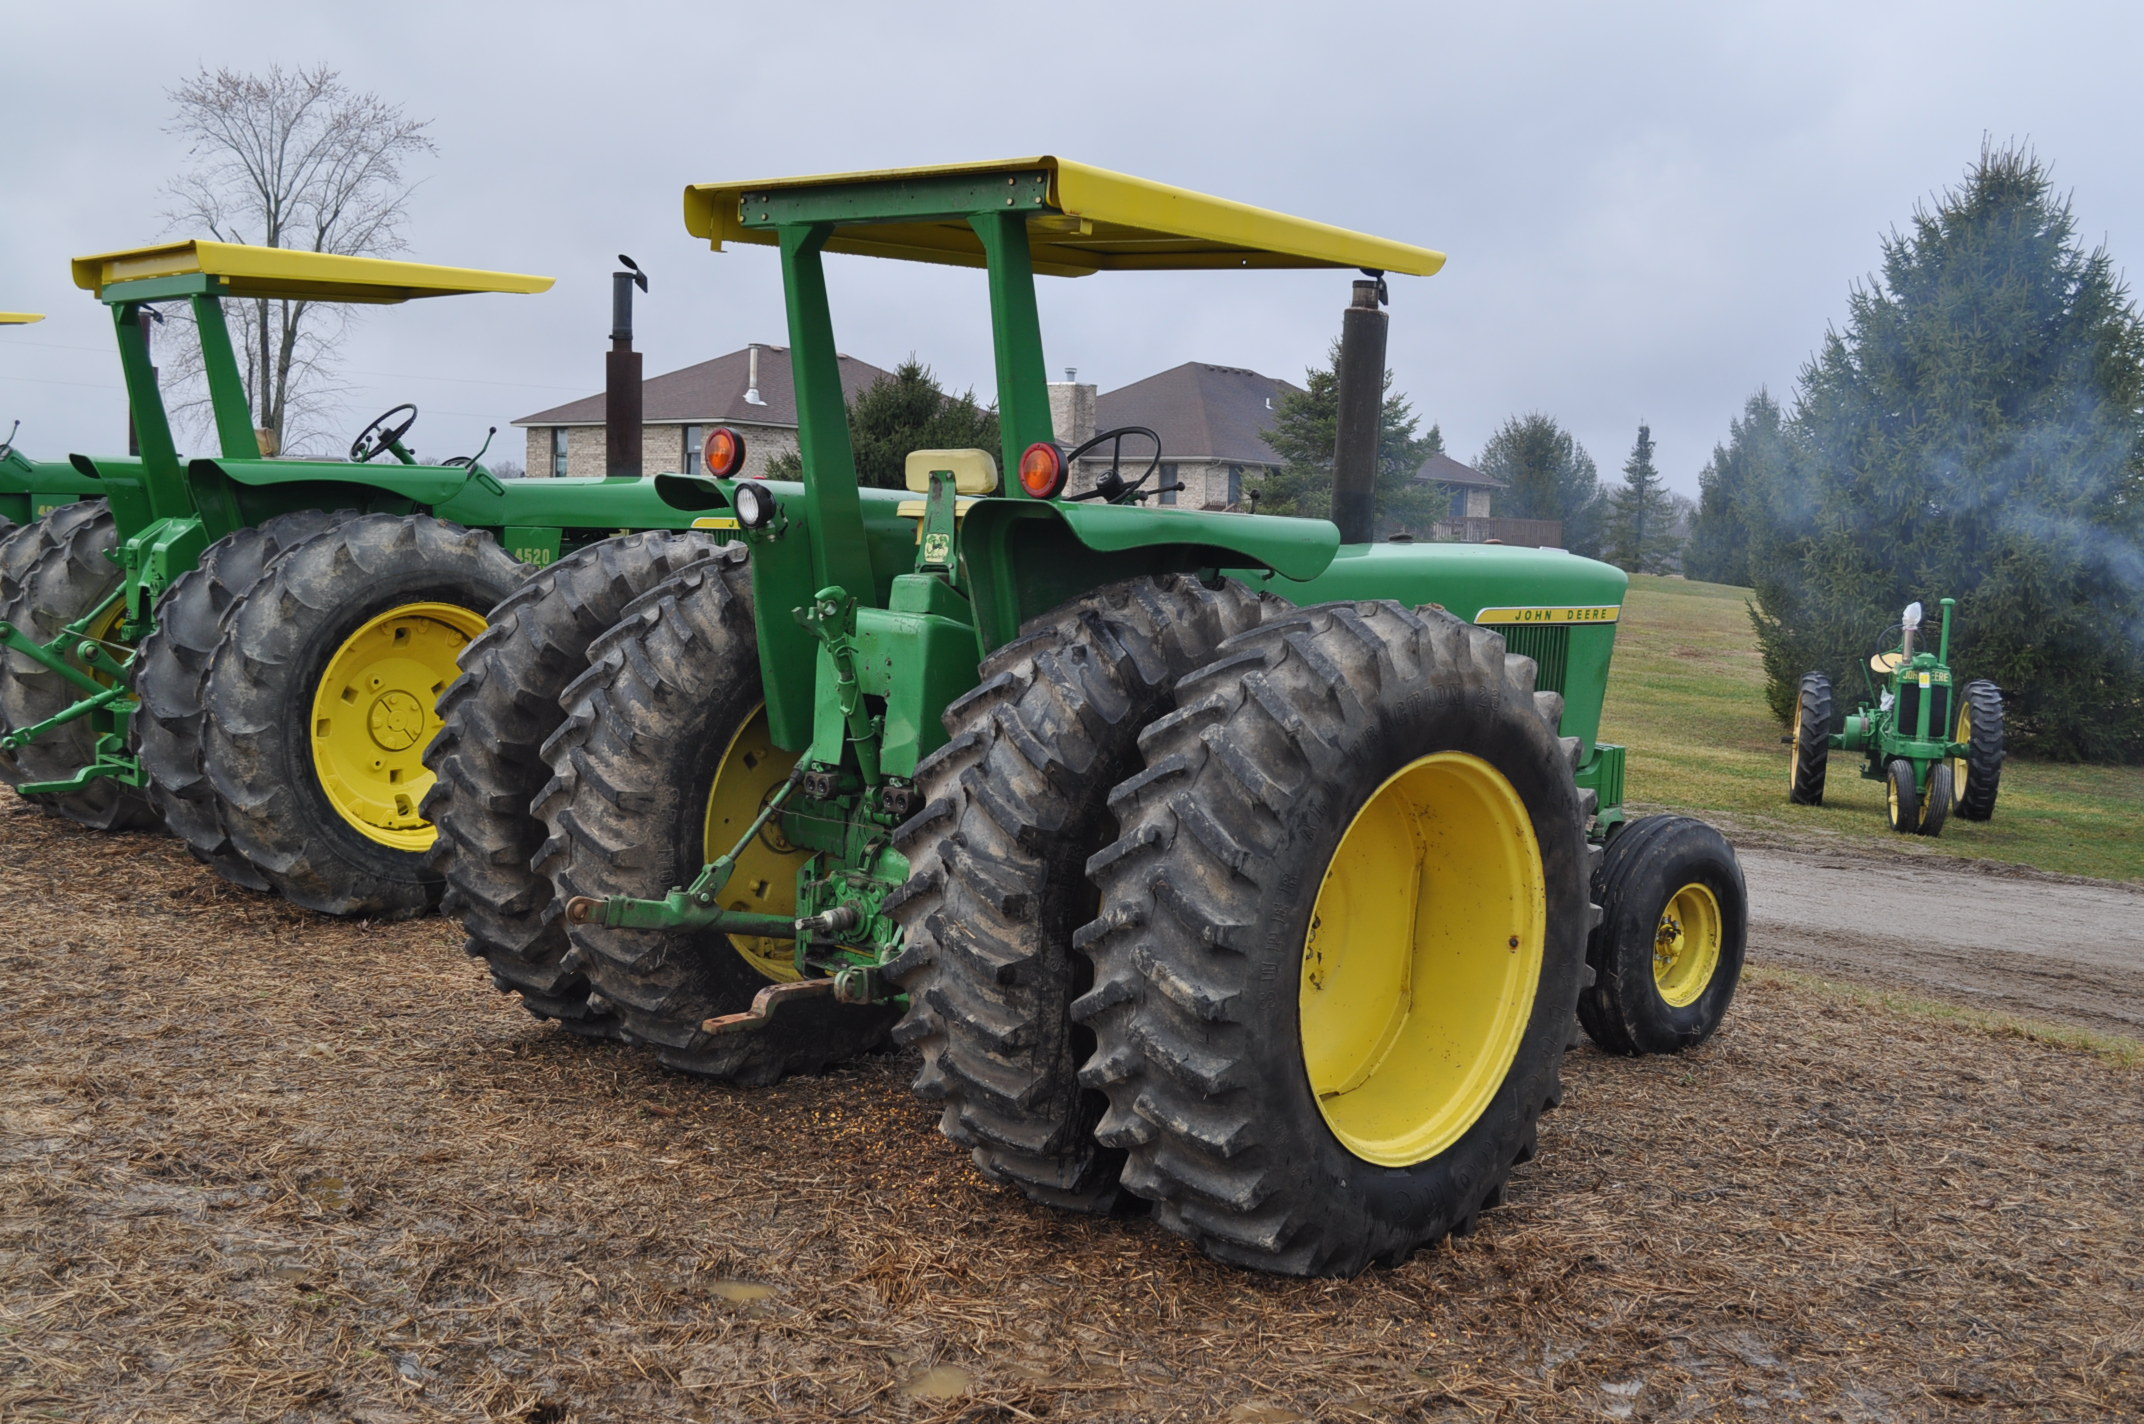 John Deere 4320 tractor, diesel, 18.4-38 duals, 10.00-16 wide front, Syncro, 2 hyd remotes, 540/1000 - Image 3 of 20